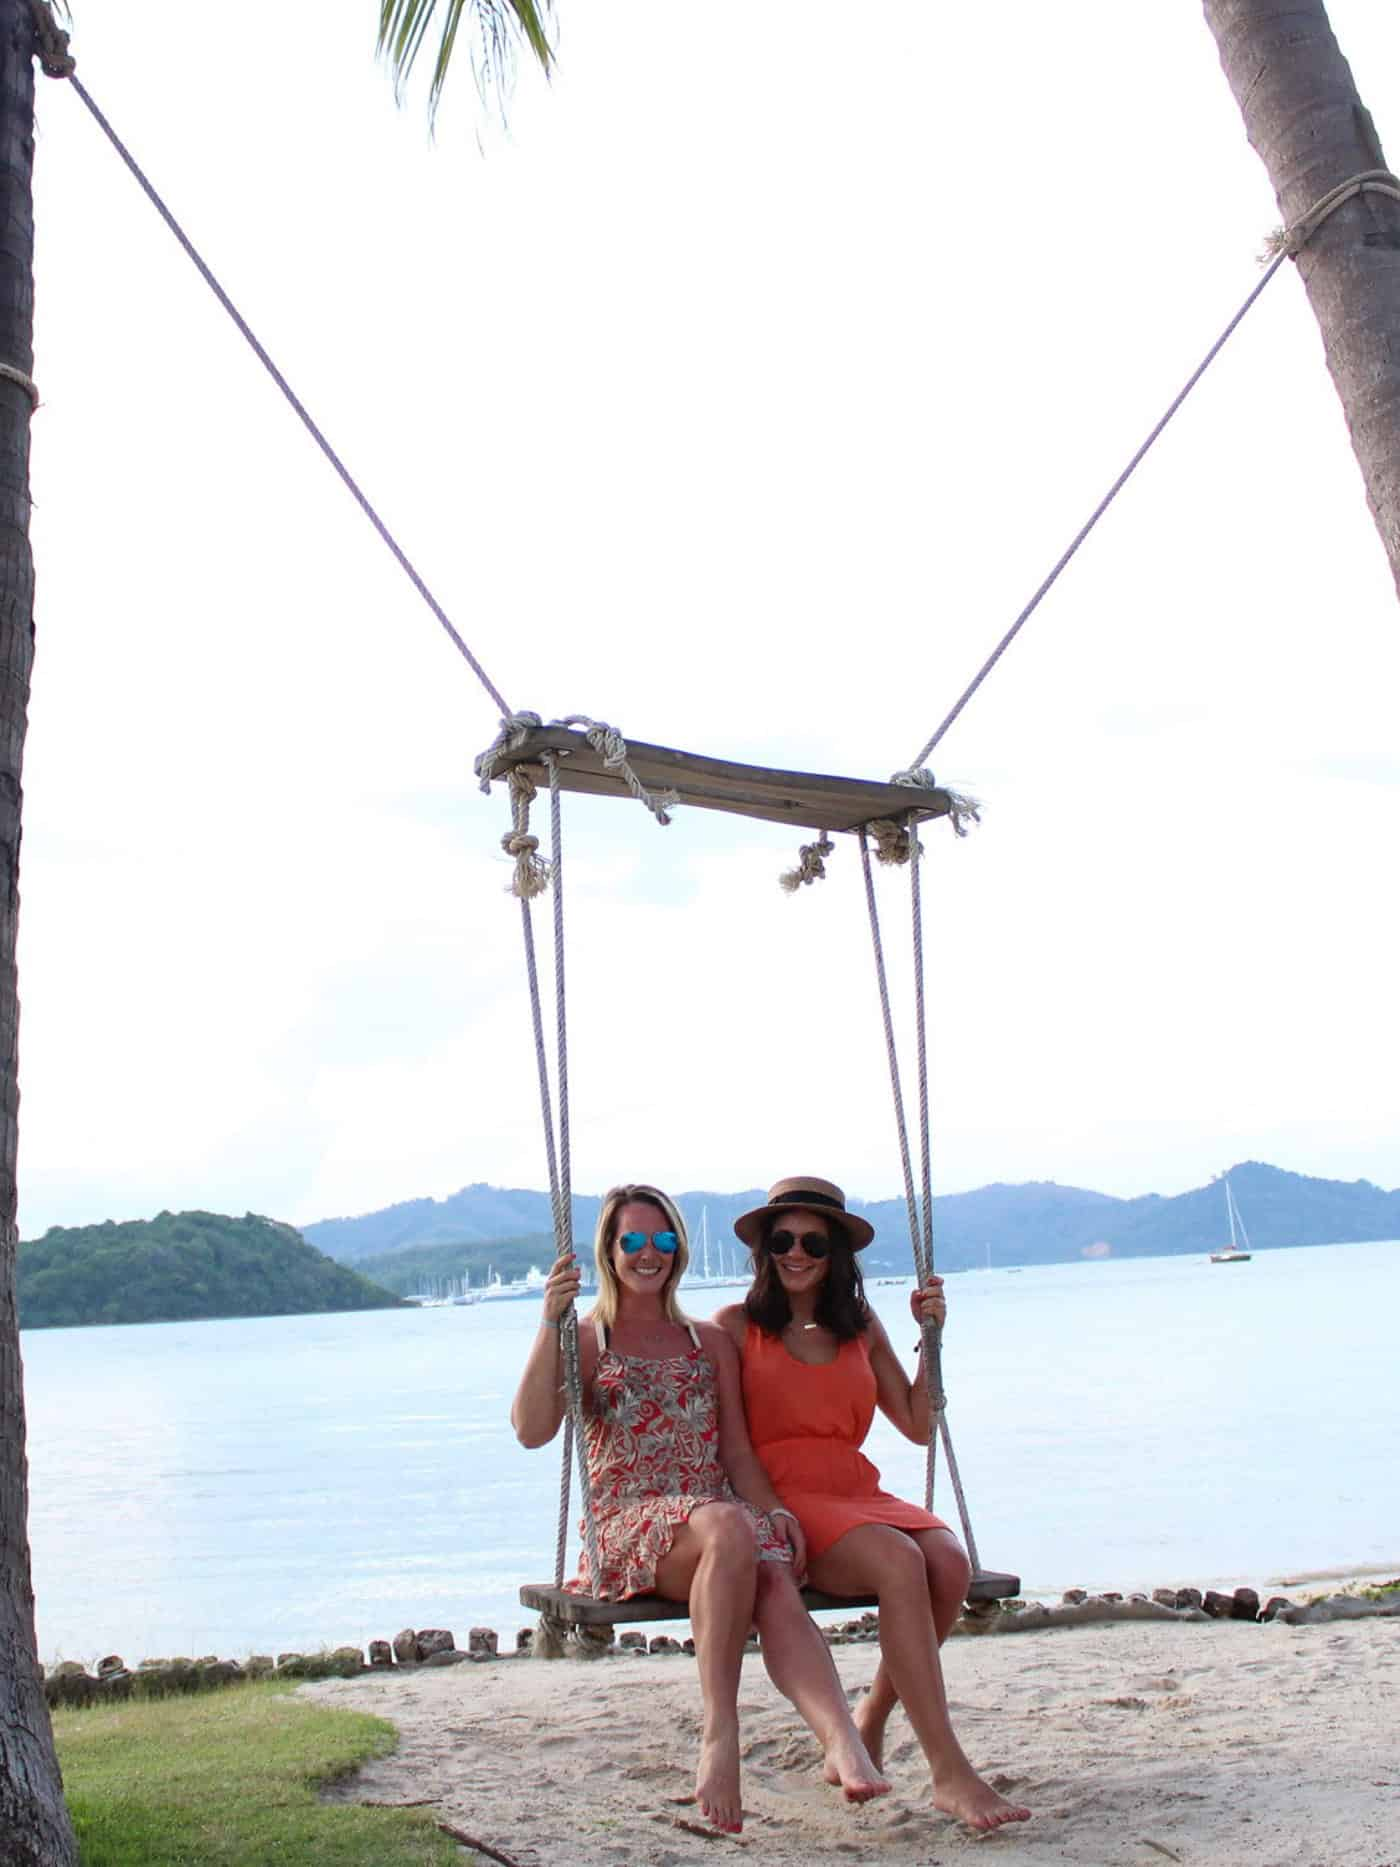 Friends sitting on a swing in Phuket